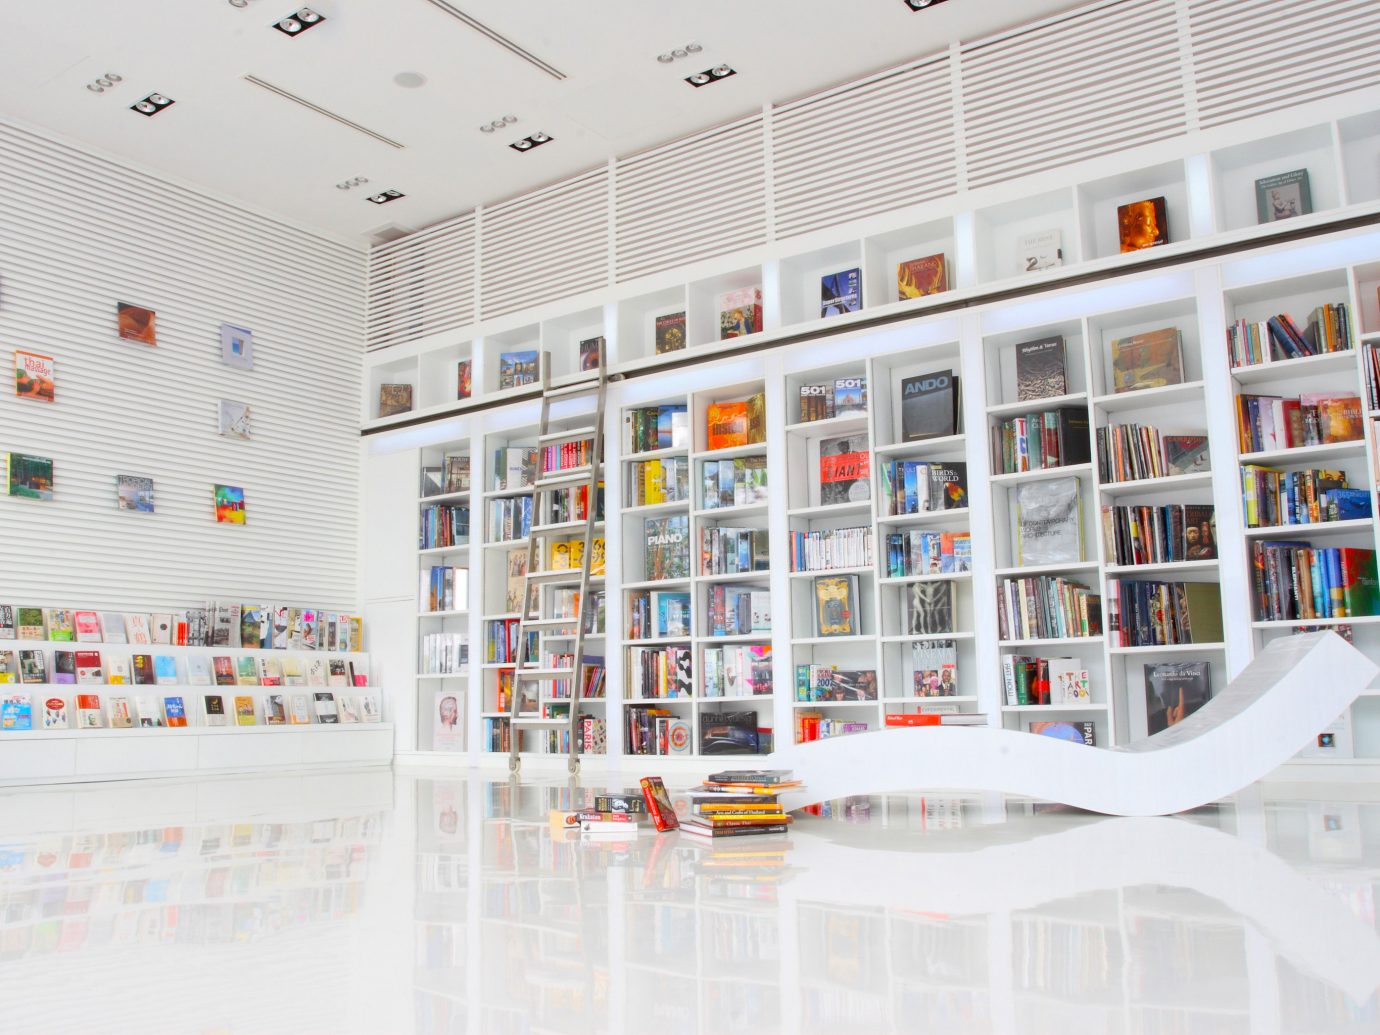 Beachfront Design Hotels Lounge Modern Tropical Waterfront indoor building public library library retail interior design shelf